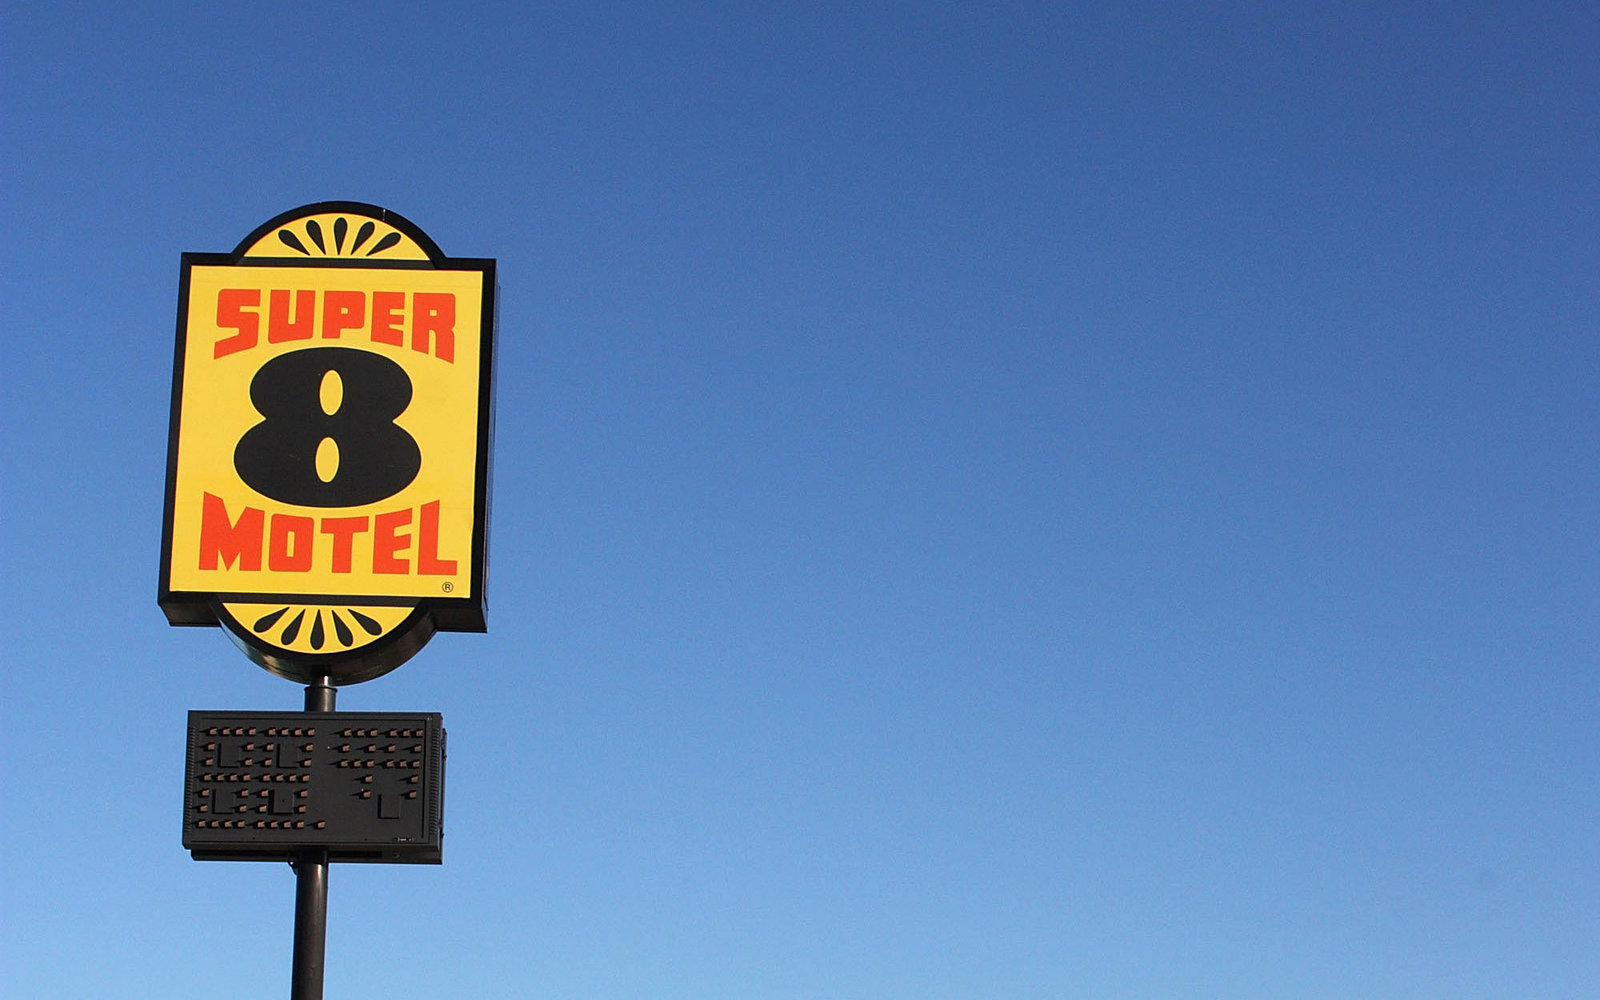 Super 8 Motel Spider